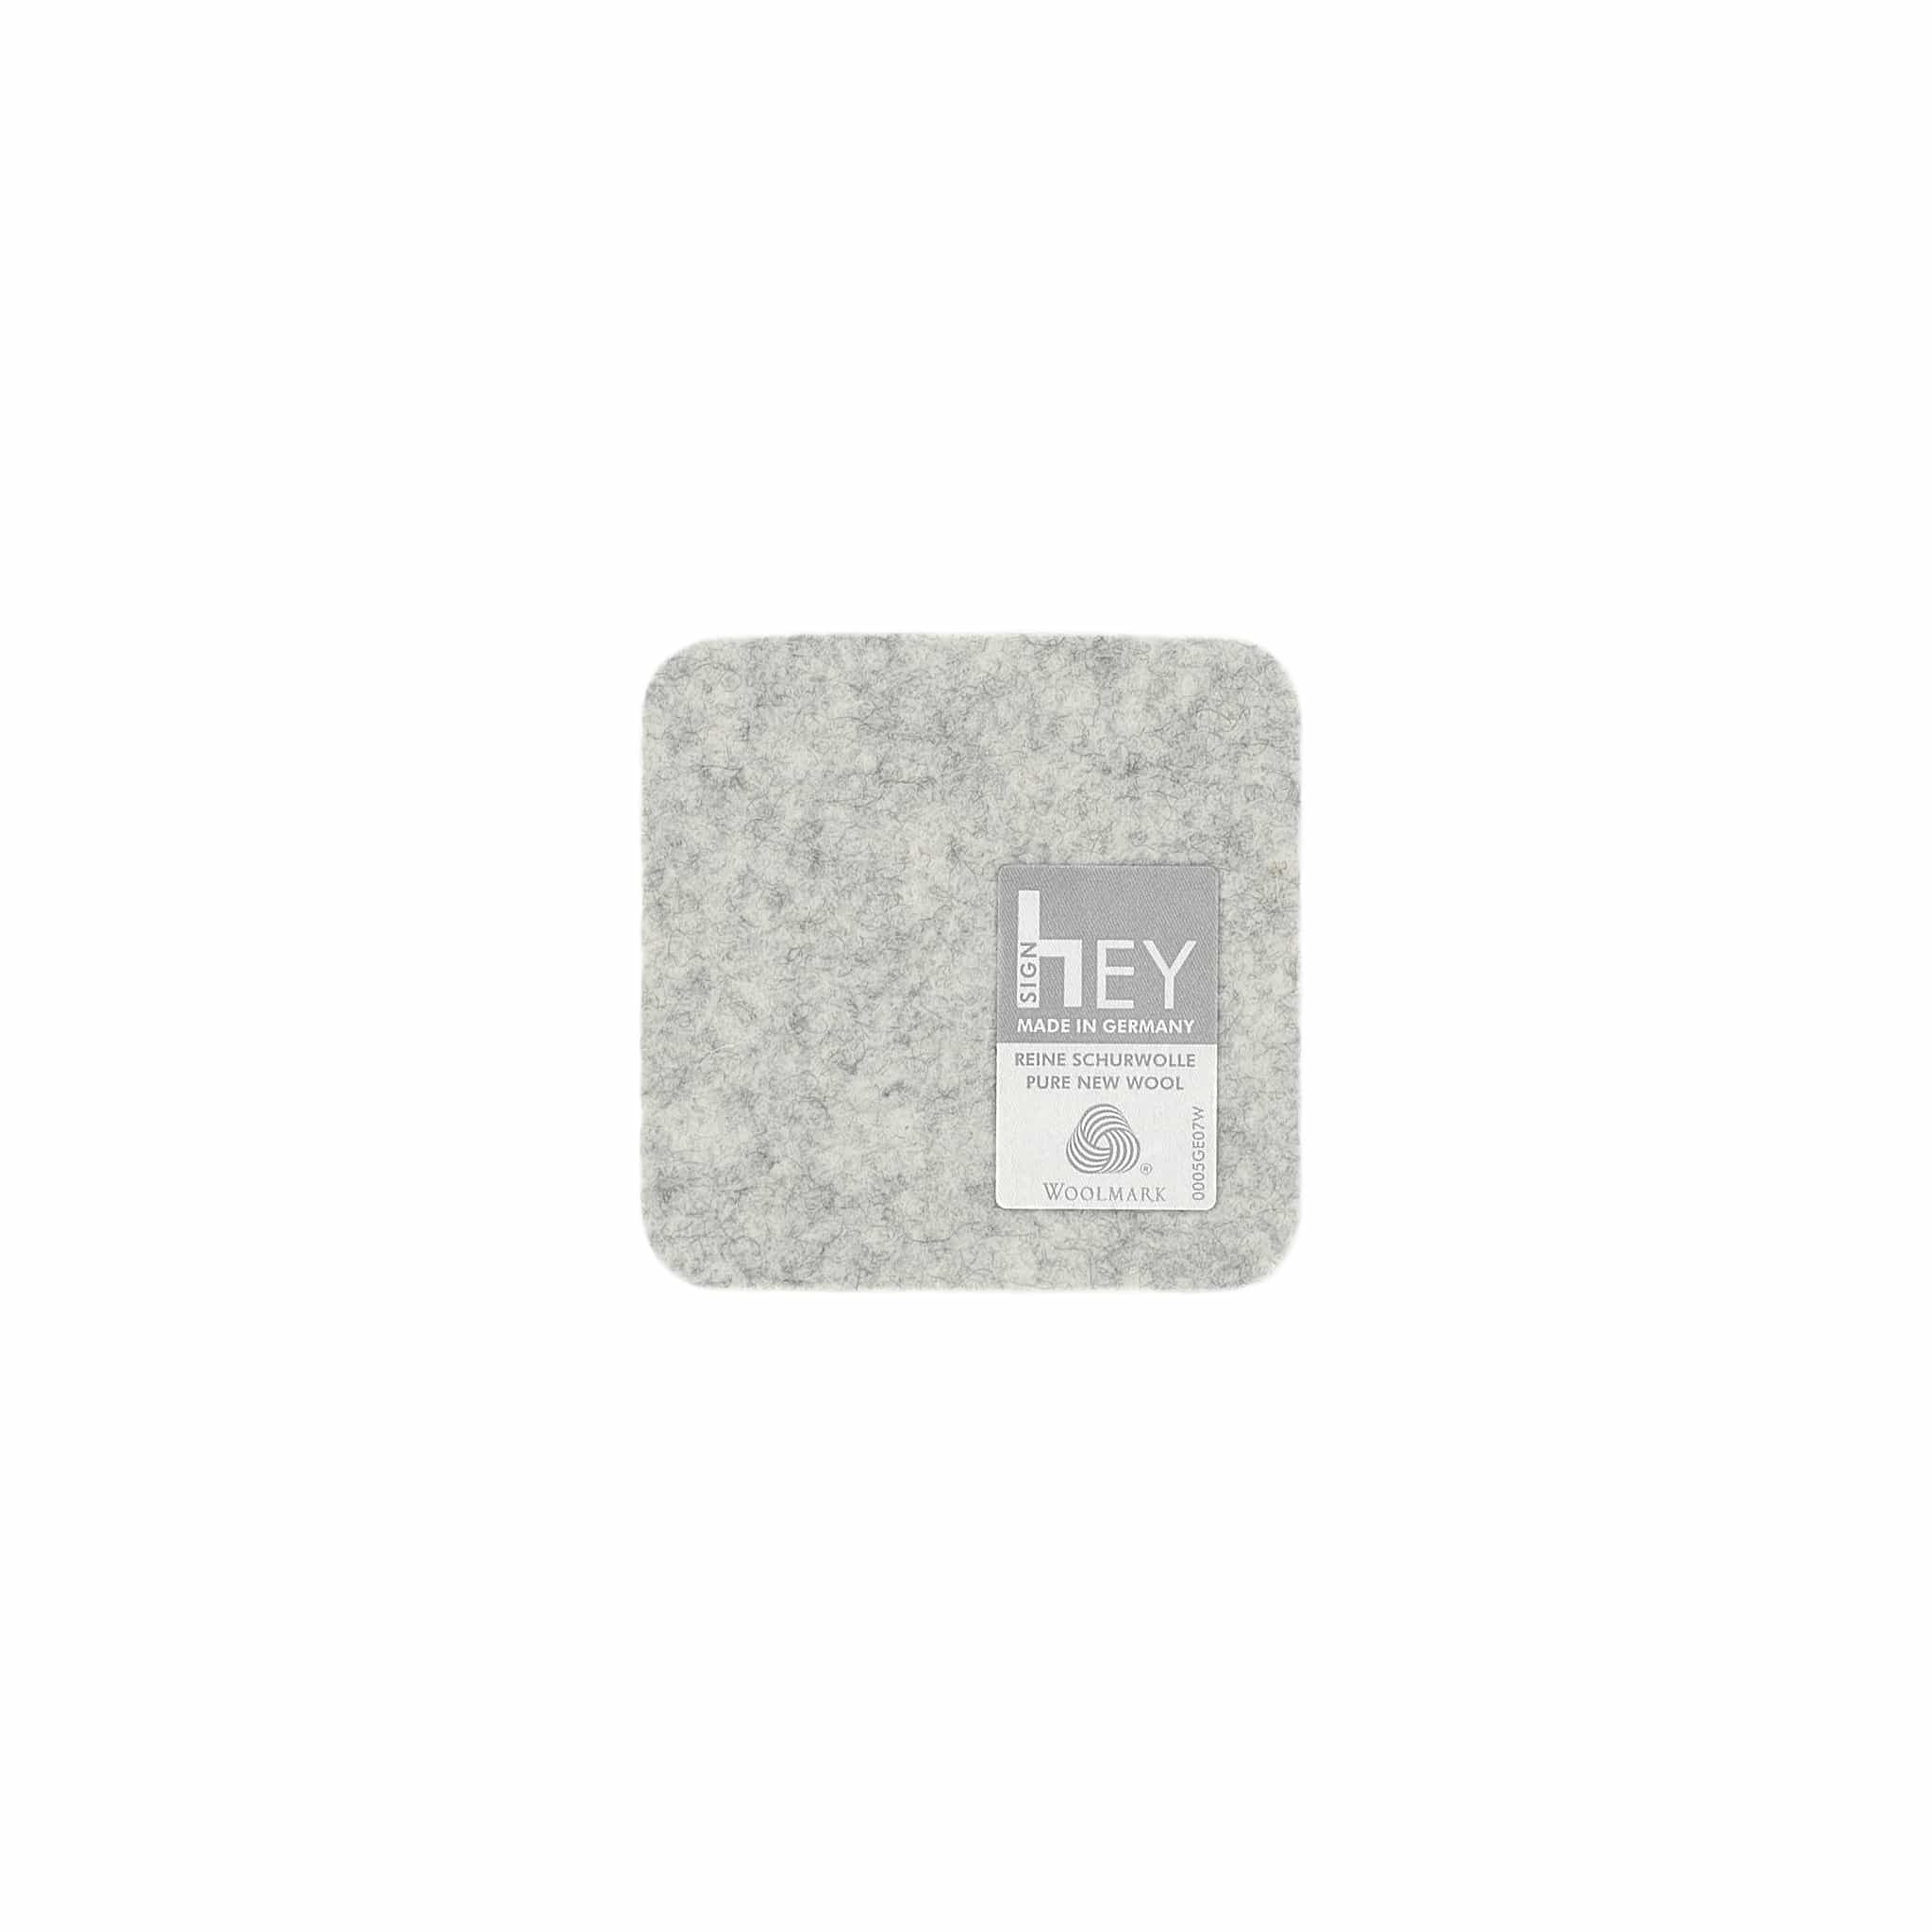 Square Felt Coaster in Marble by Hey-Sign 300160906 looking at Back